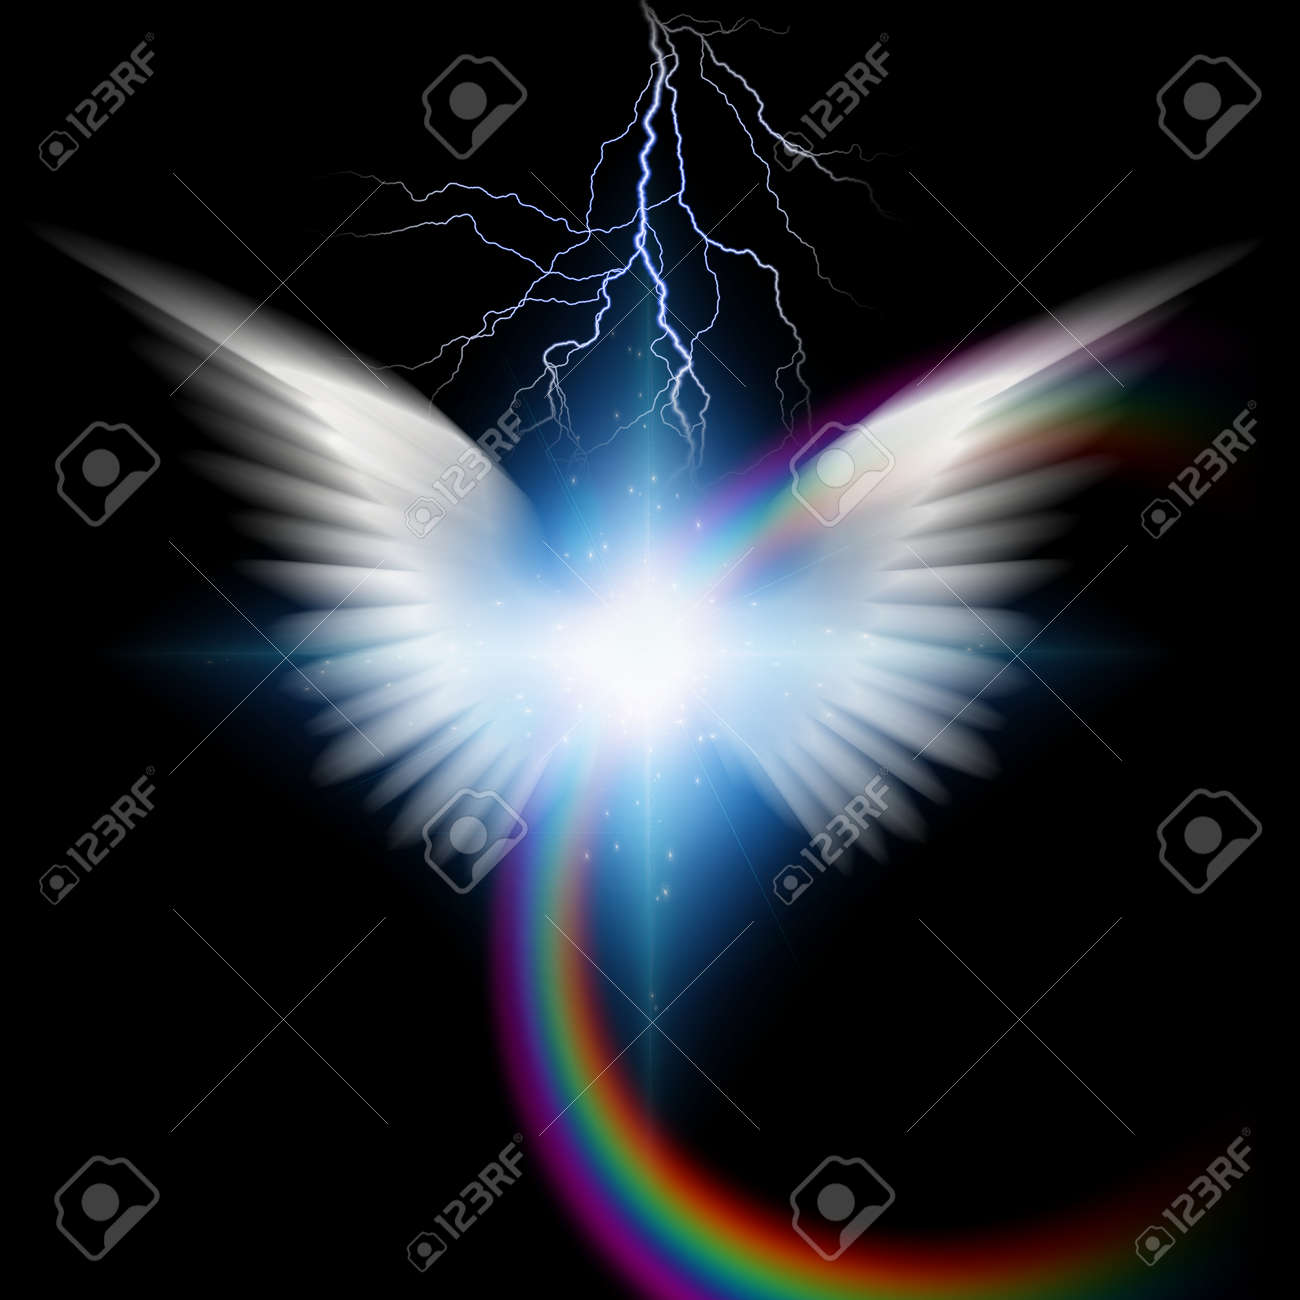 Angelic wings with lighting - 50446515